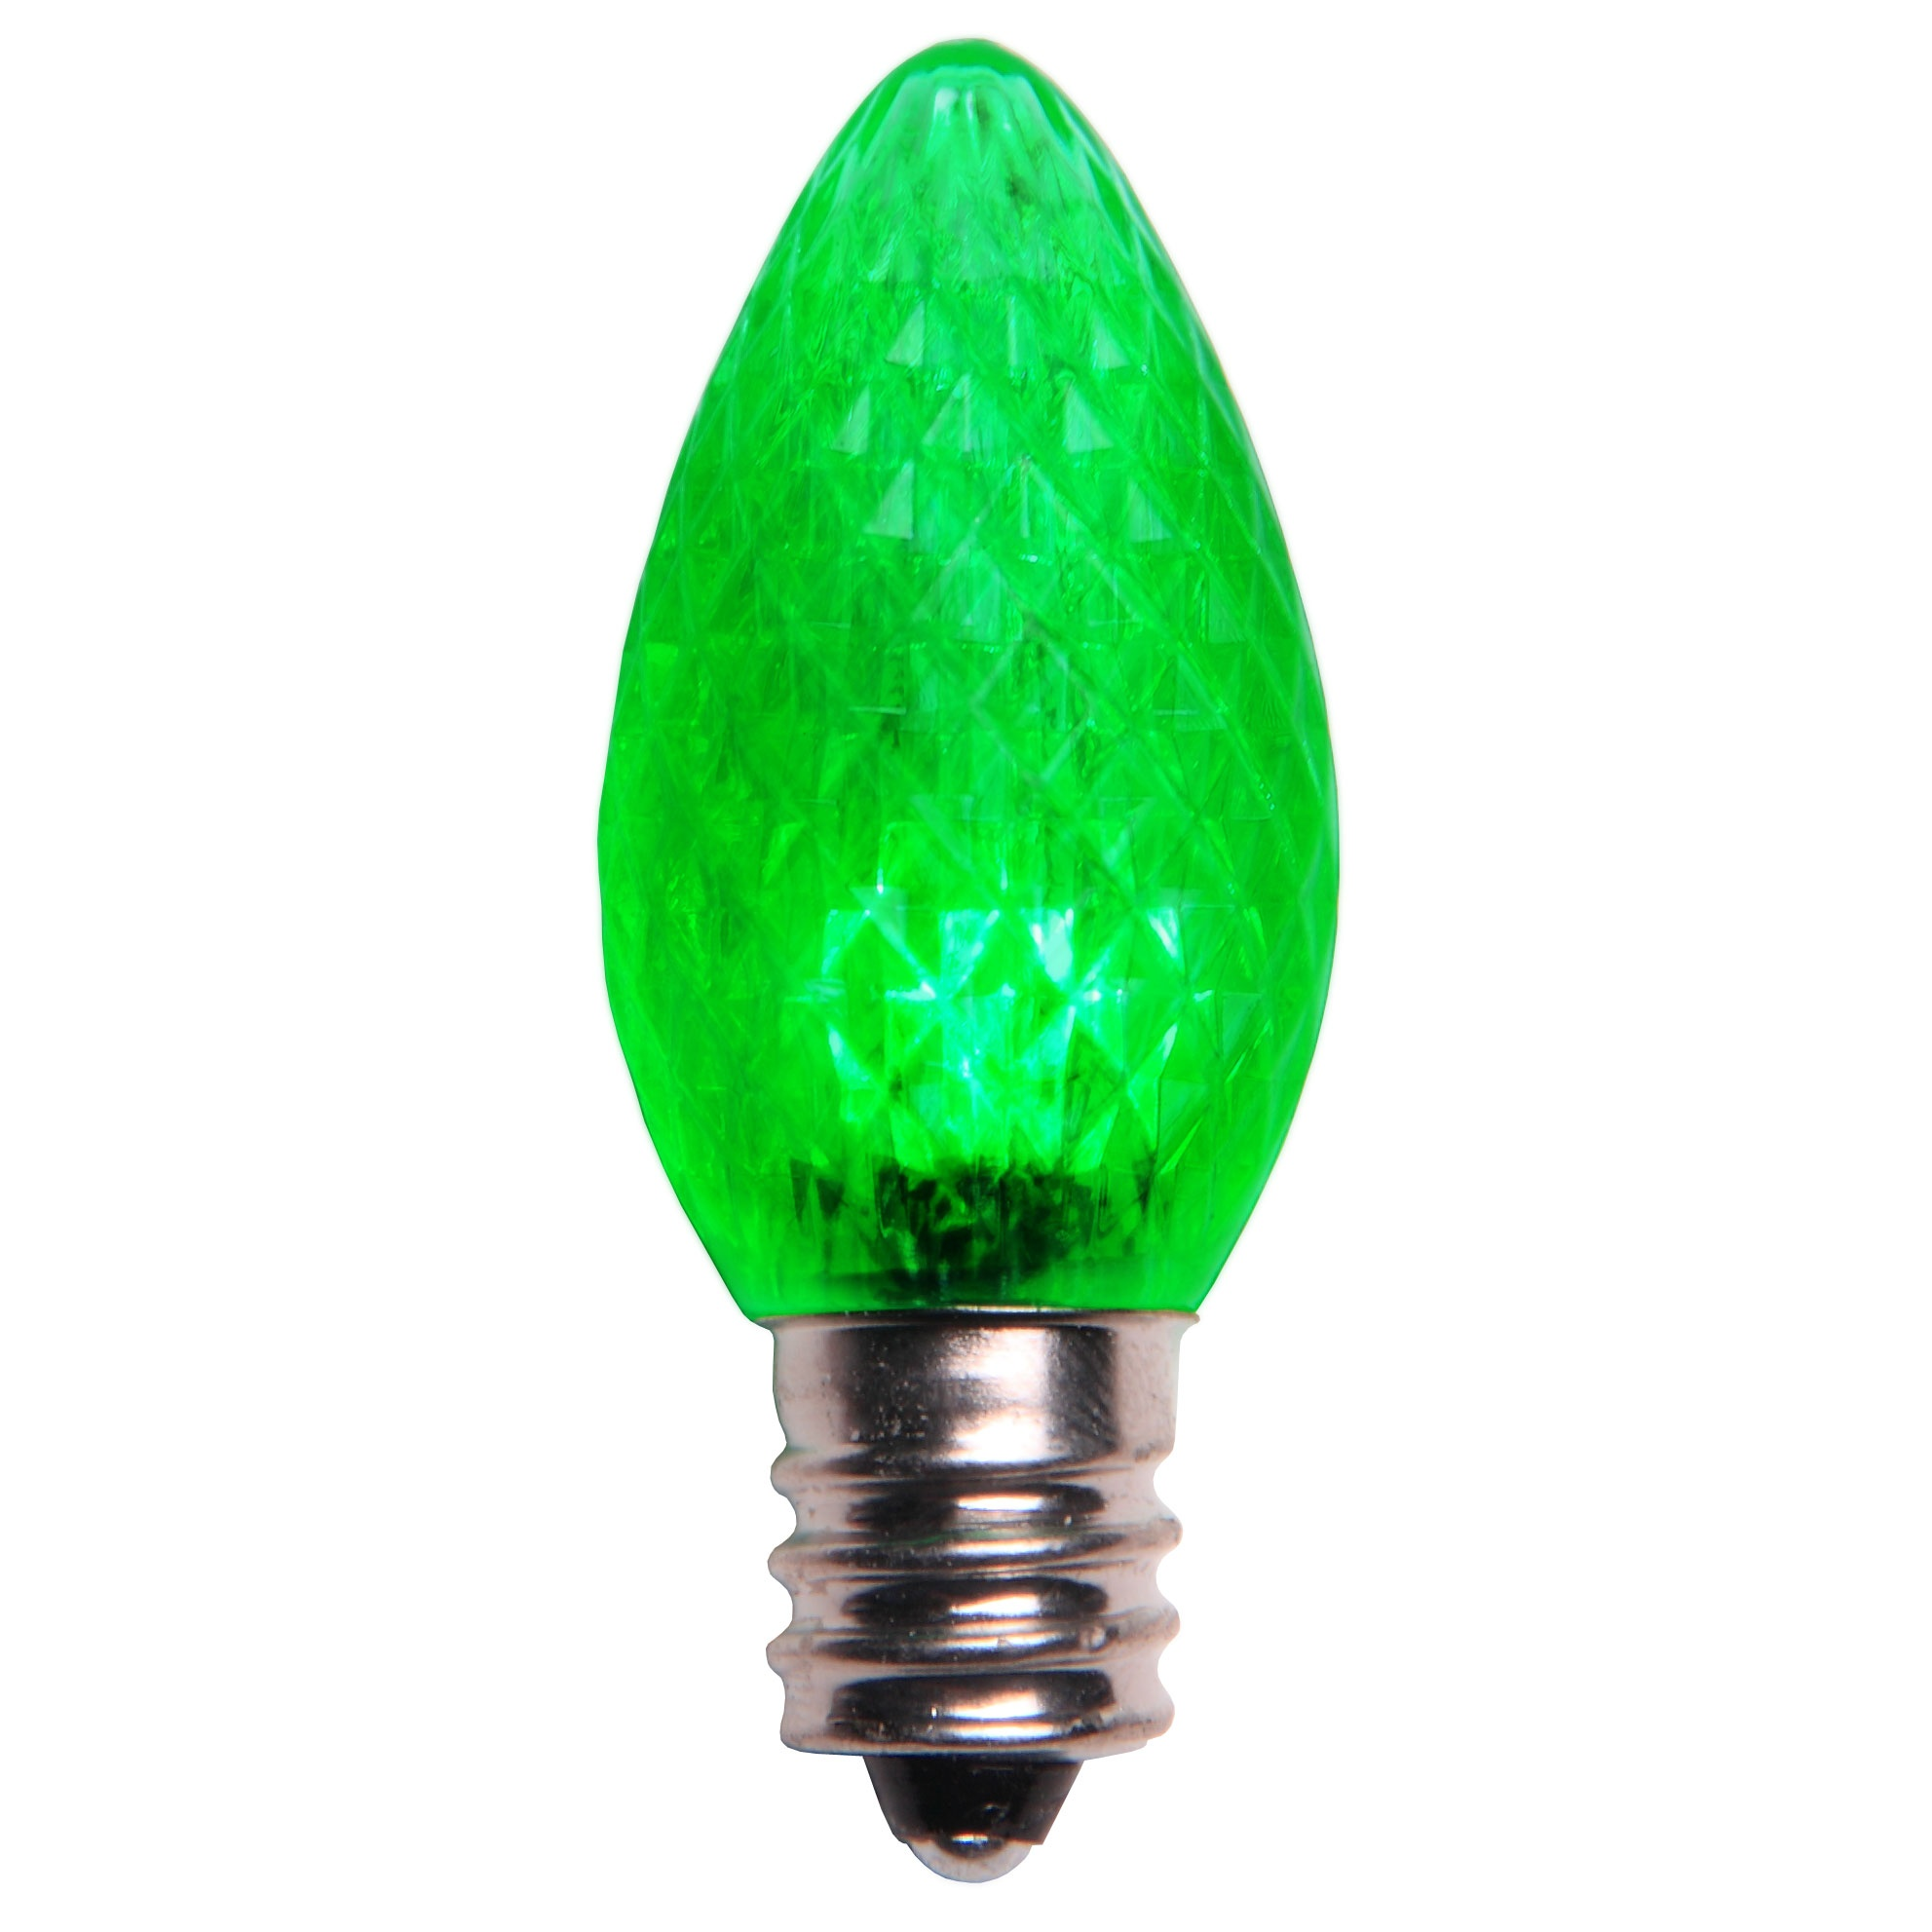 Home Accents Holiday Lights Replacement Bulbs